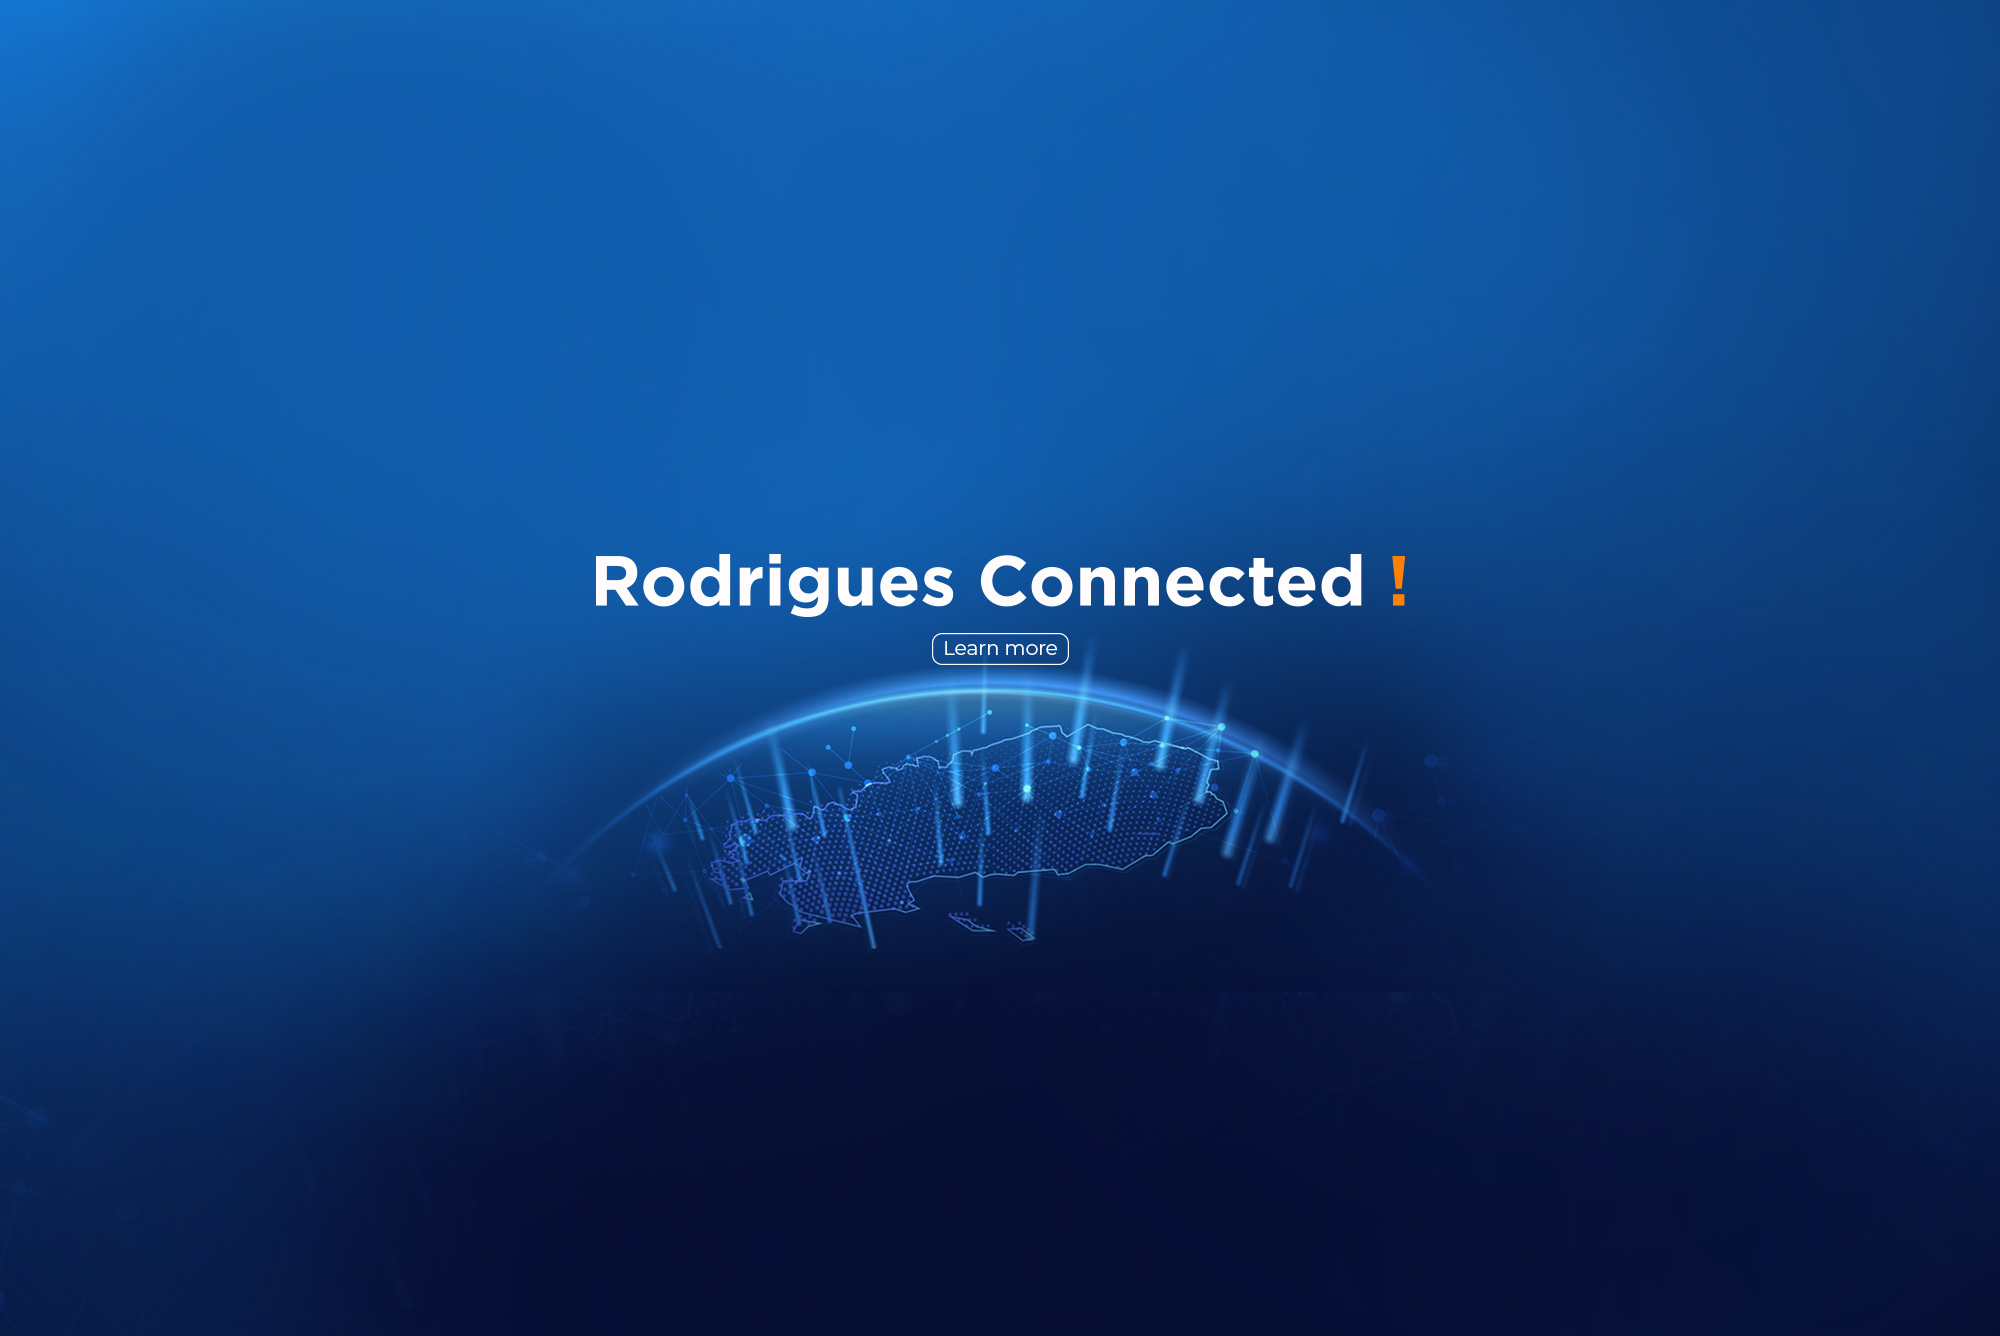 Rodrigues connected